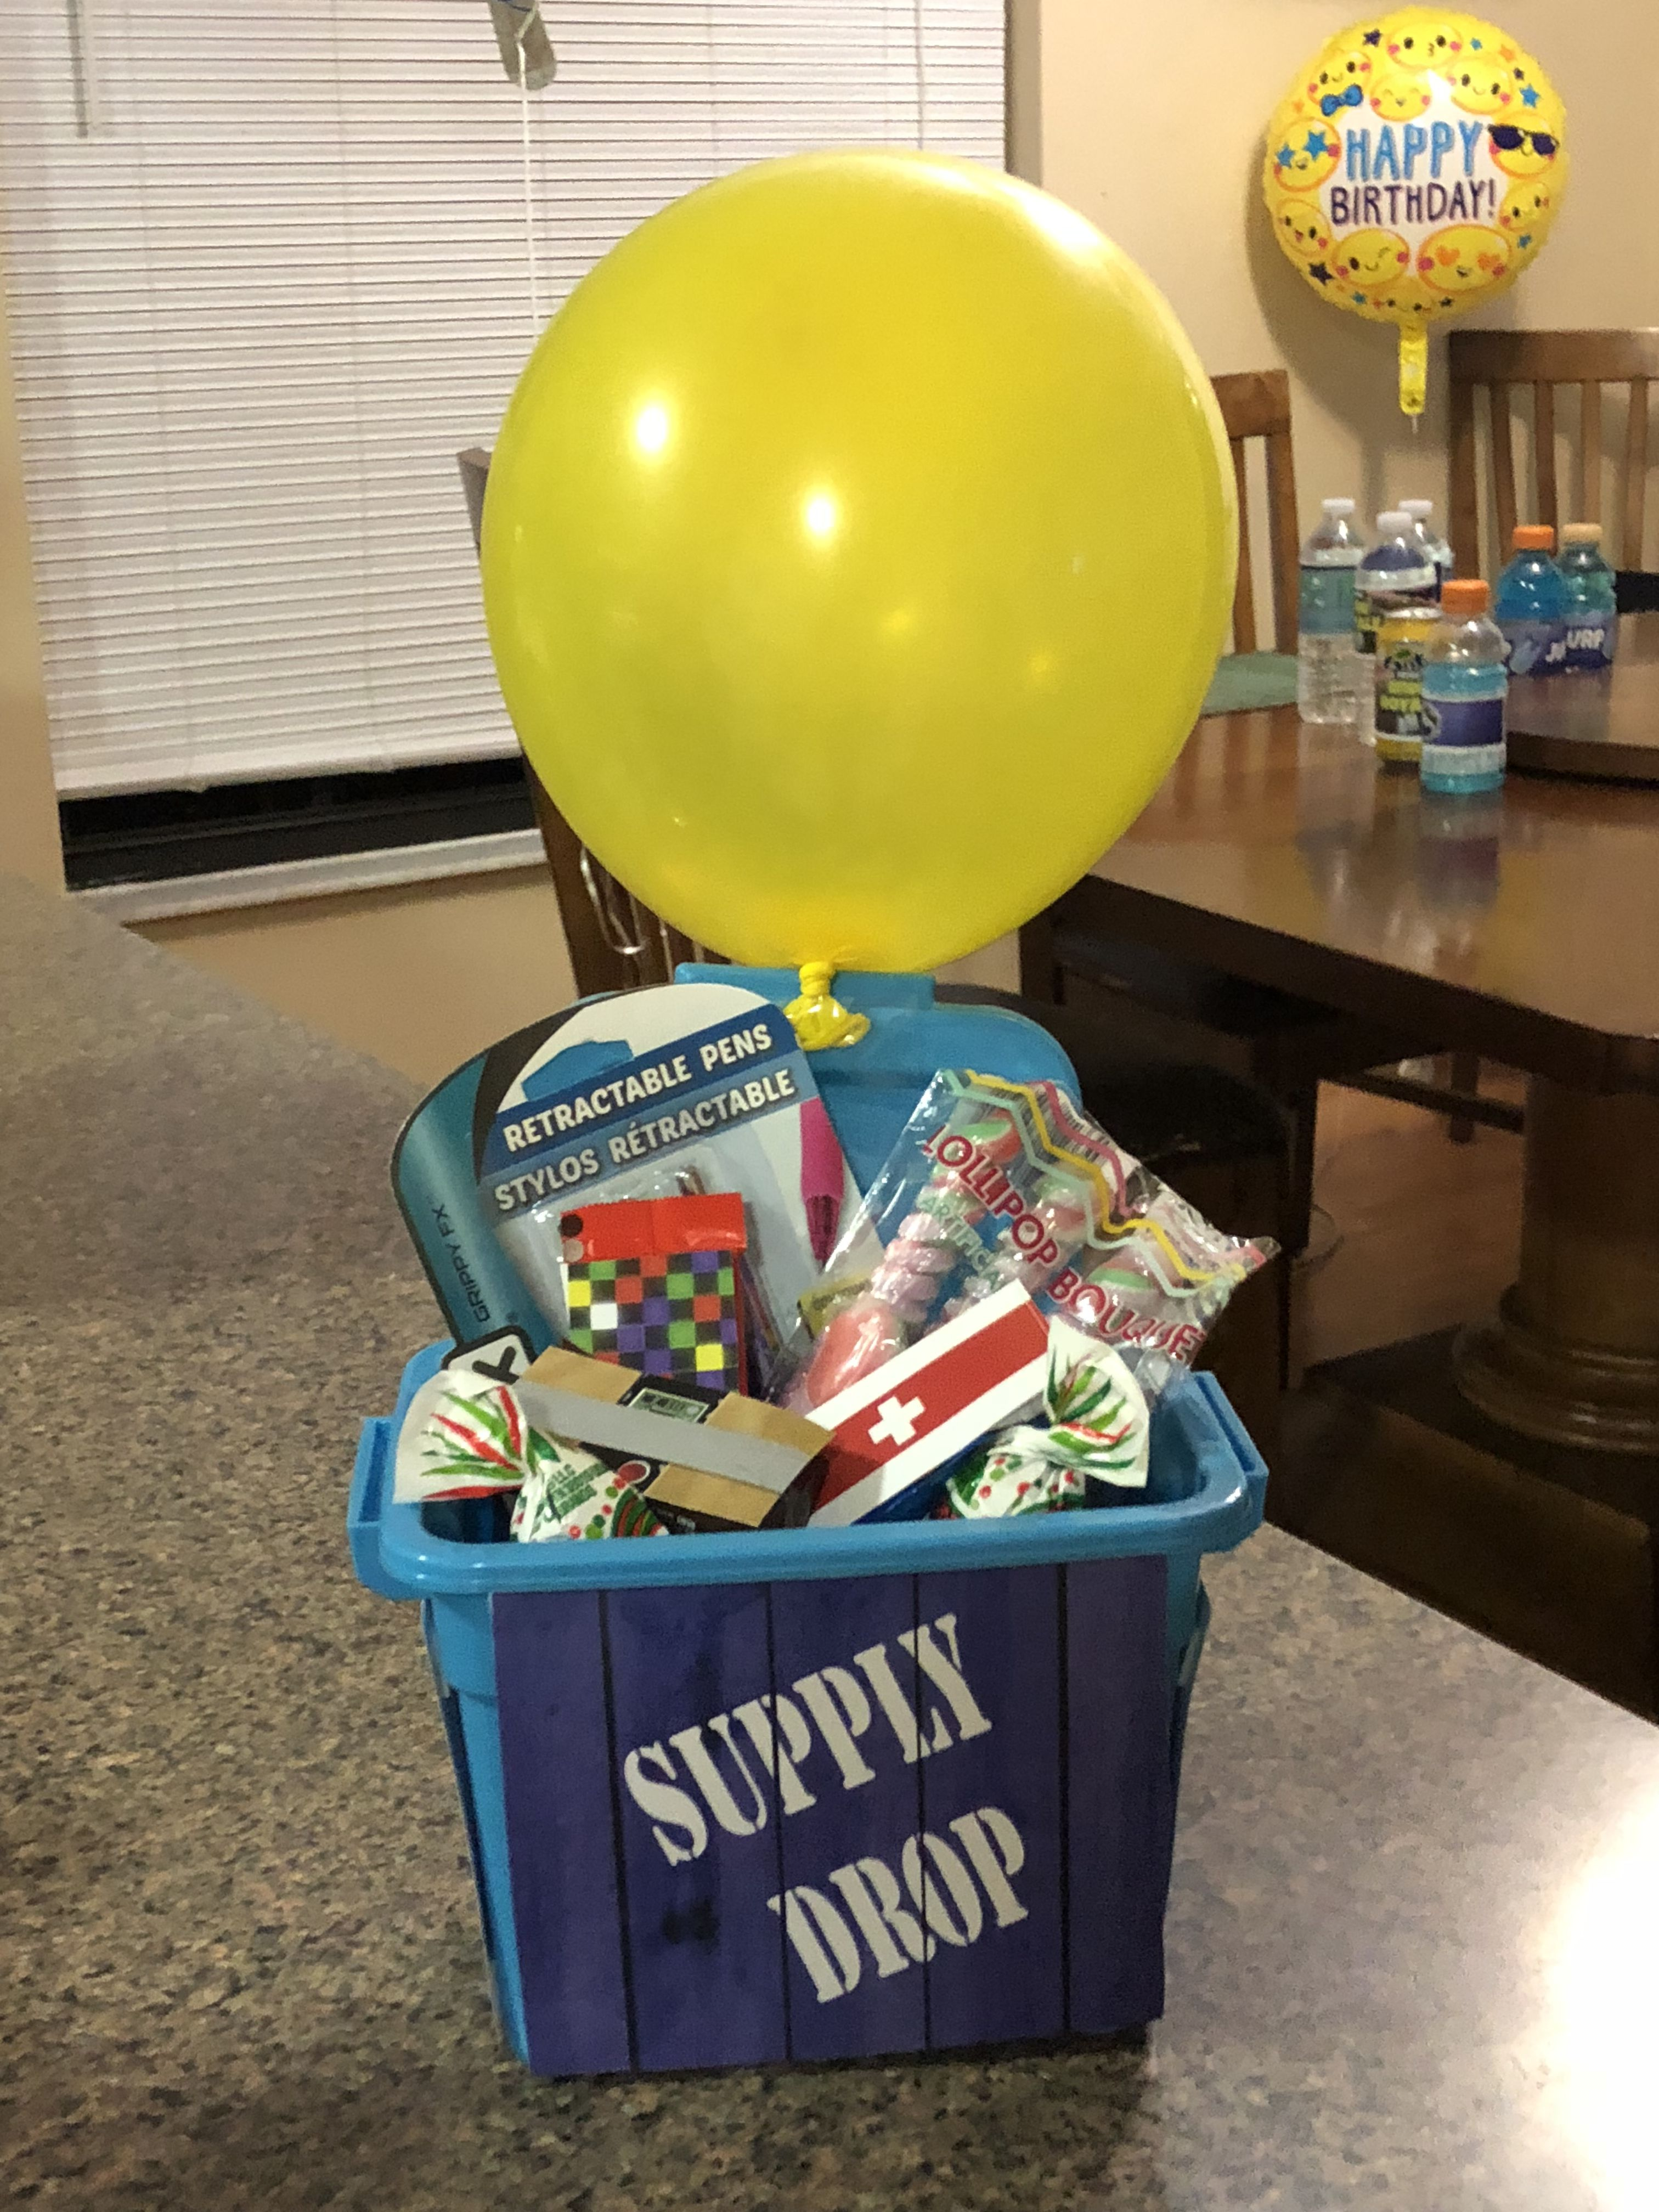 Supply Drop Fortnite Party Favors Blue Container From Dollar Tree